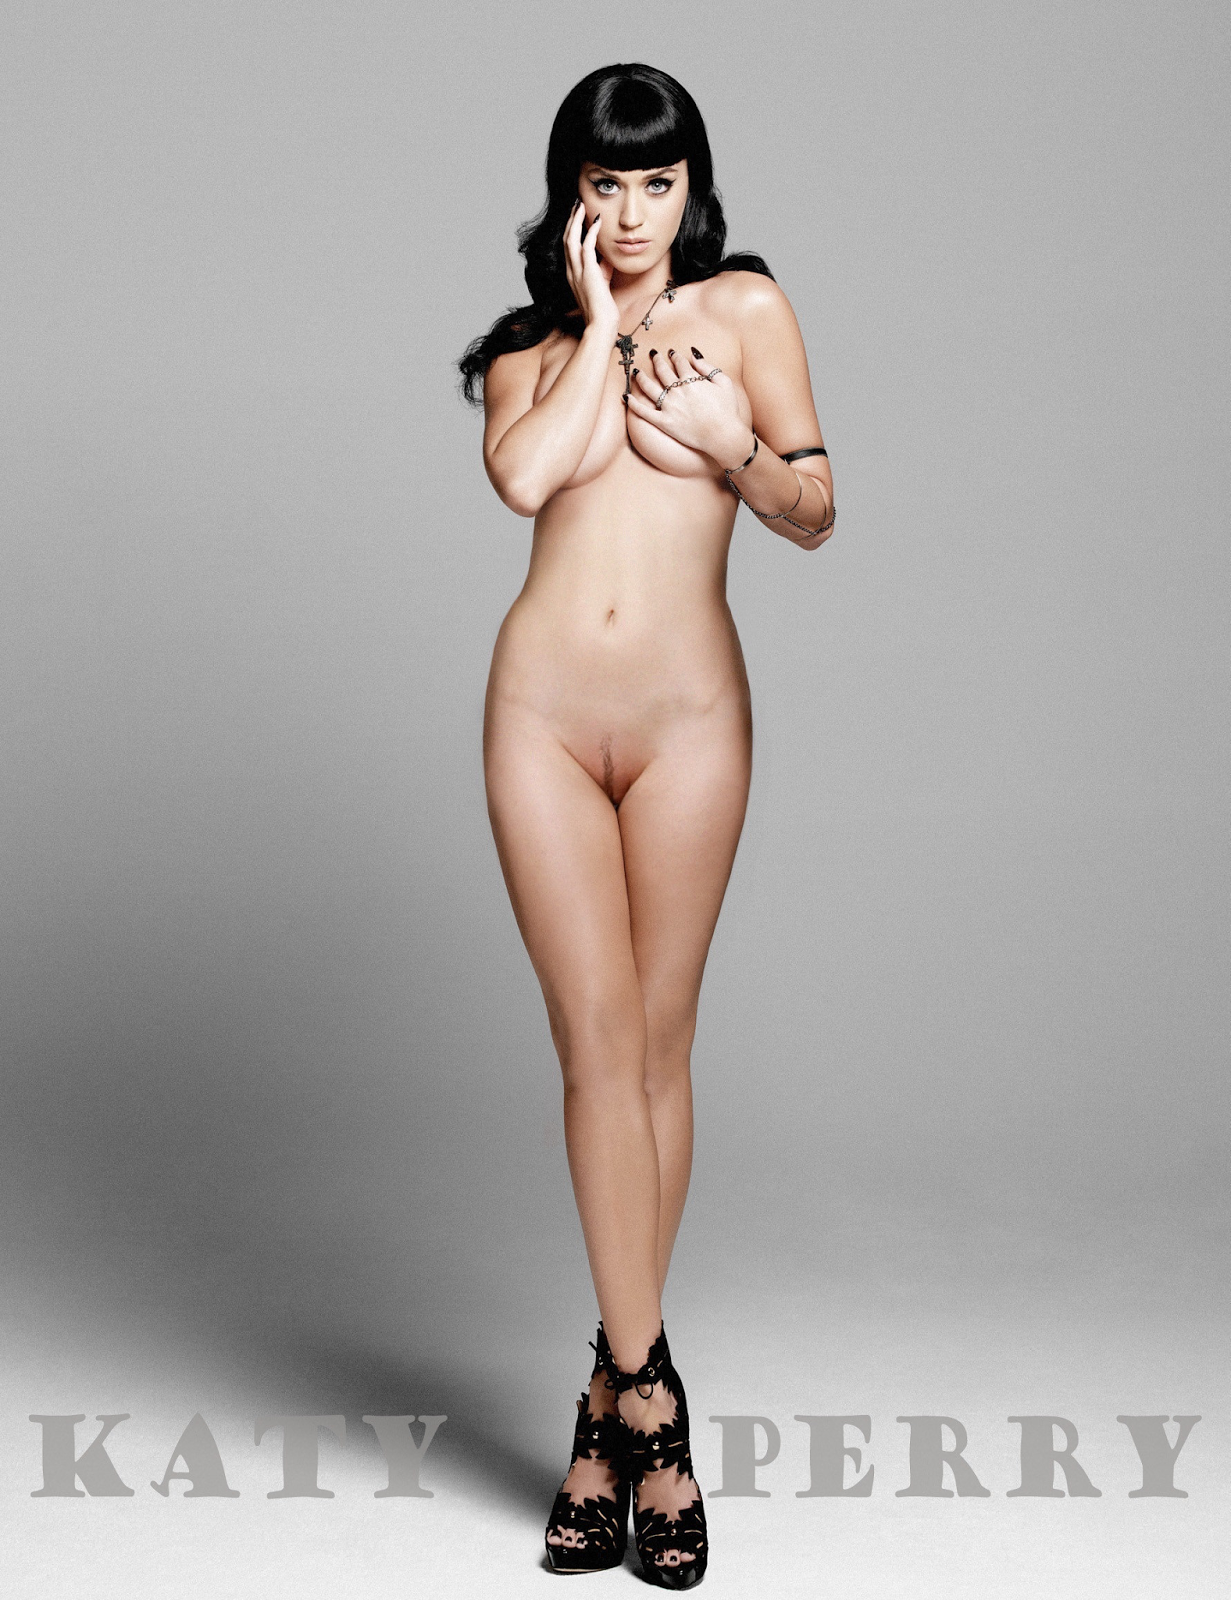 Katy Perry Standing Nude Showing Shaved Pussy